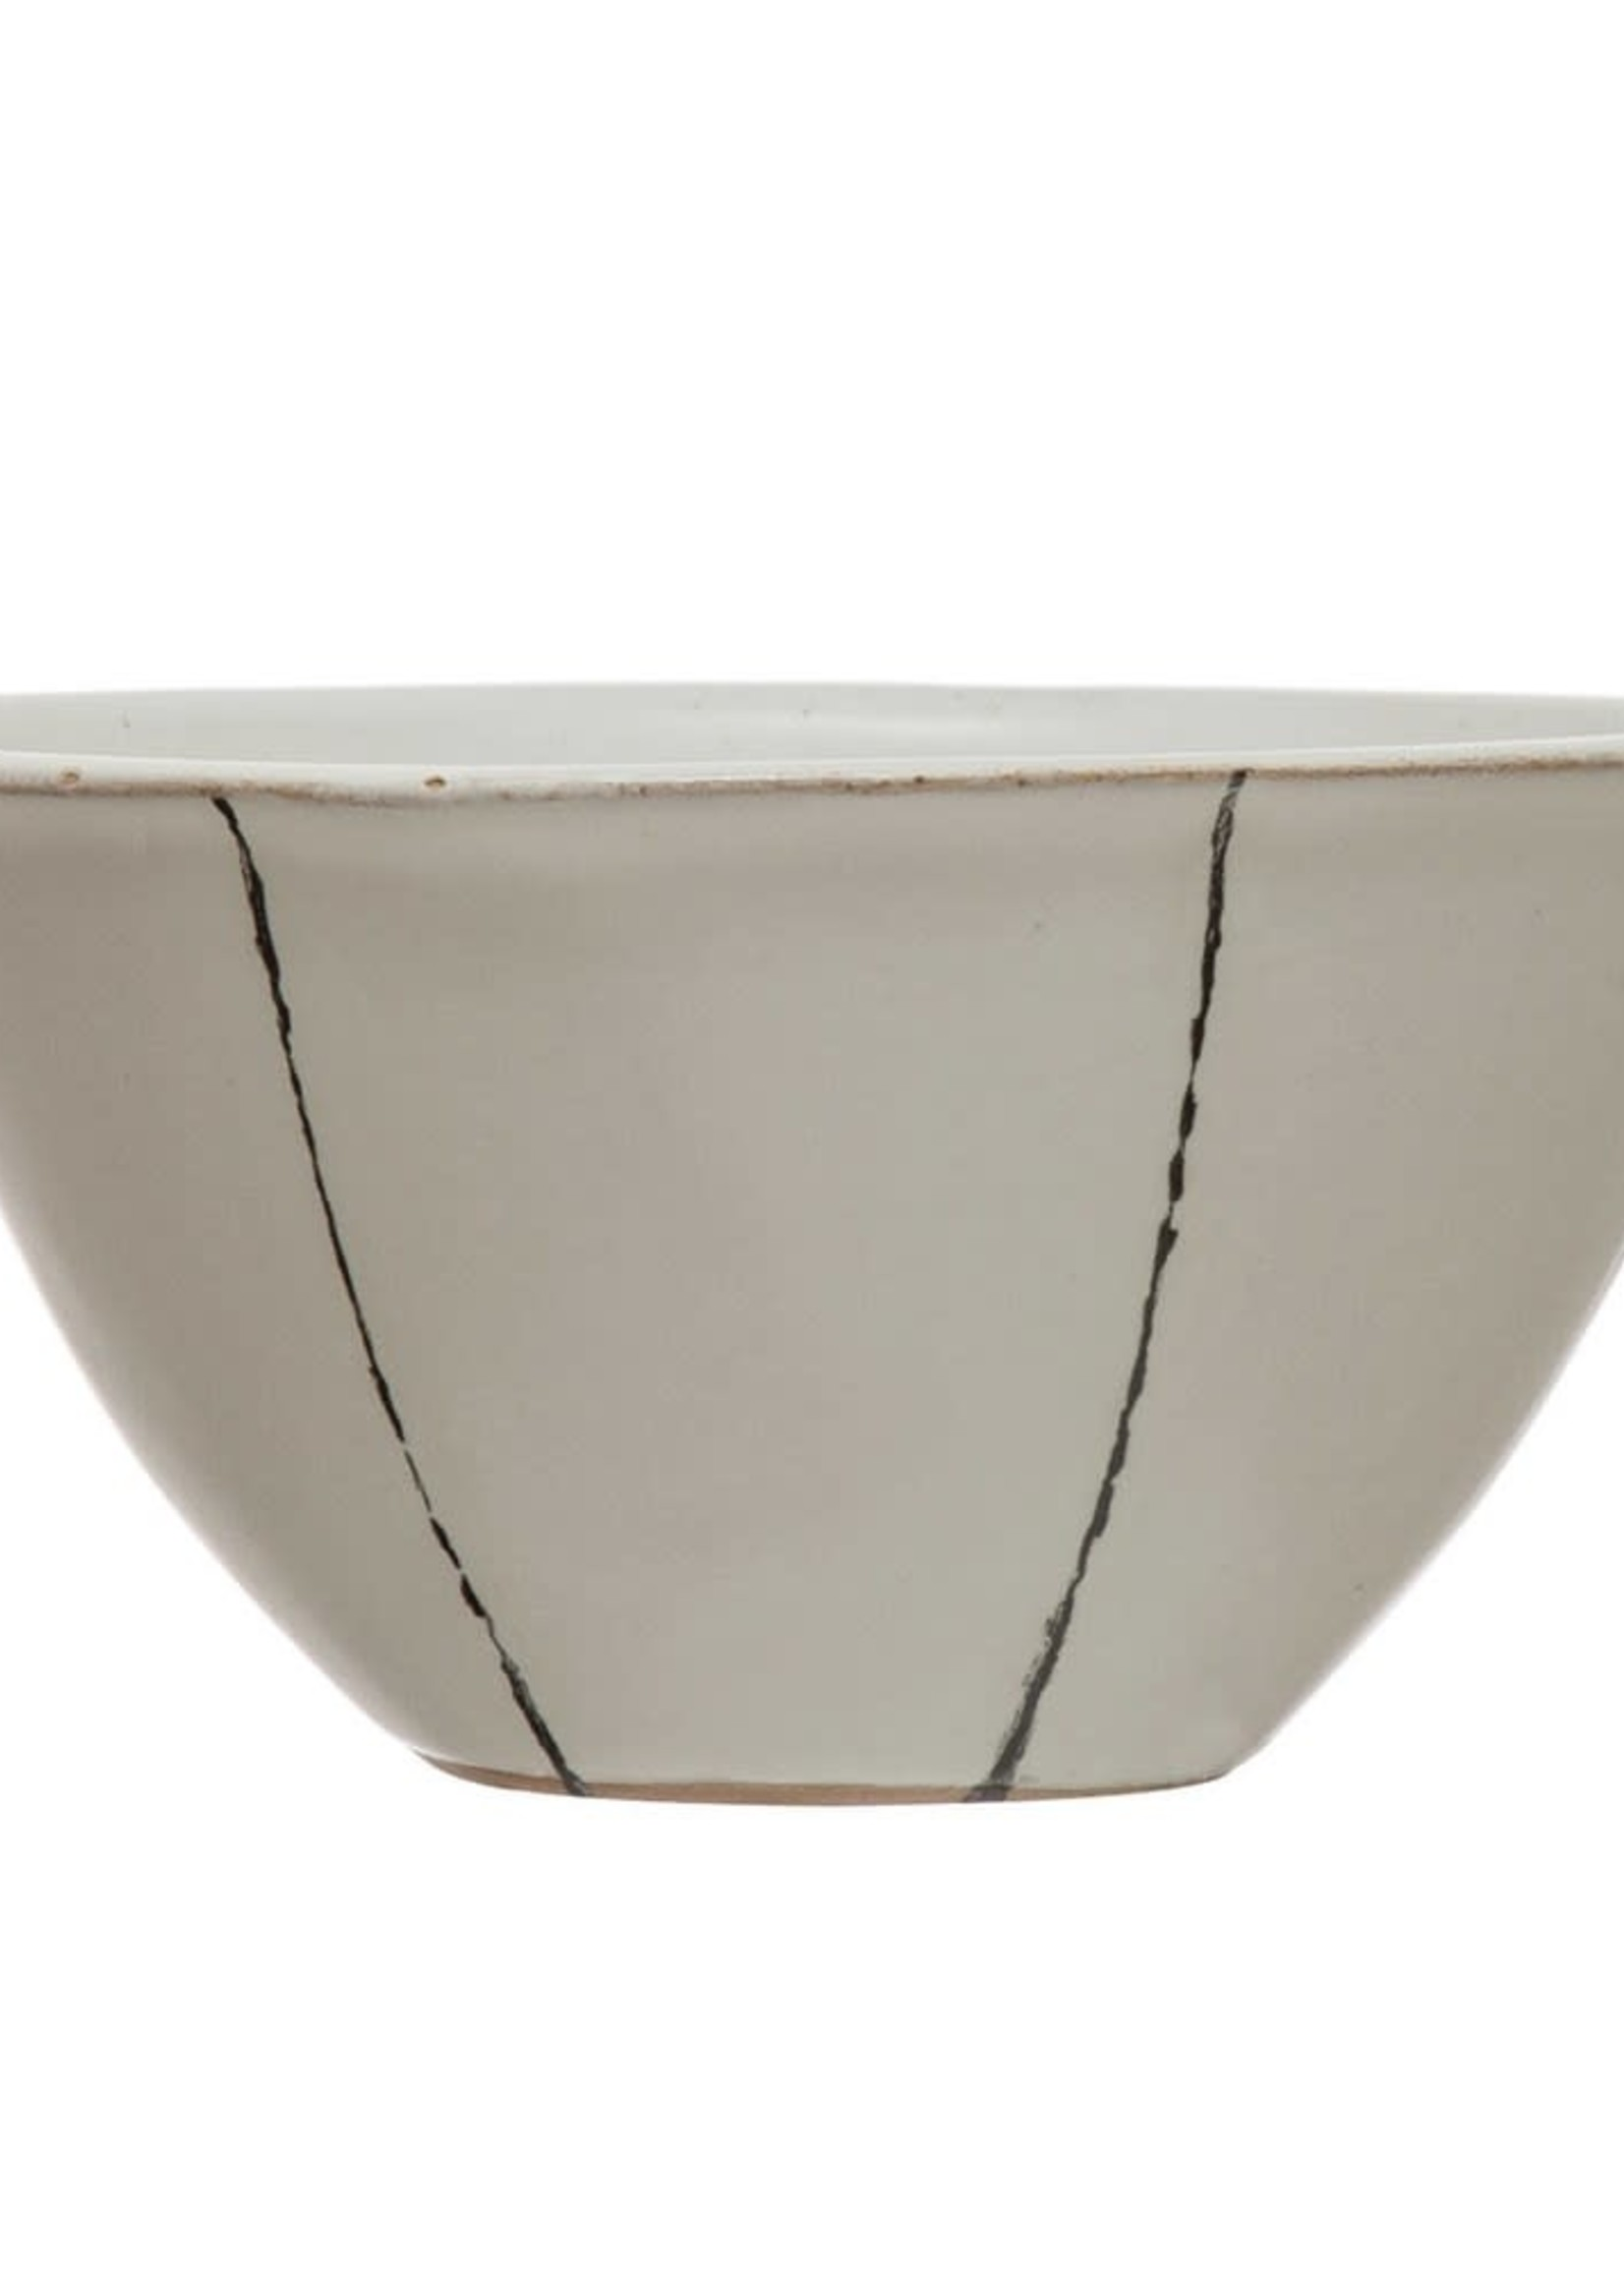 """5"""" Round x 2-1/2""""H Hand-Painted Stoneware Bowl, Matte White w/ Black Stripes (Each One Will Vary)"""